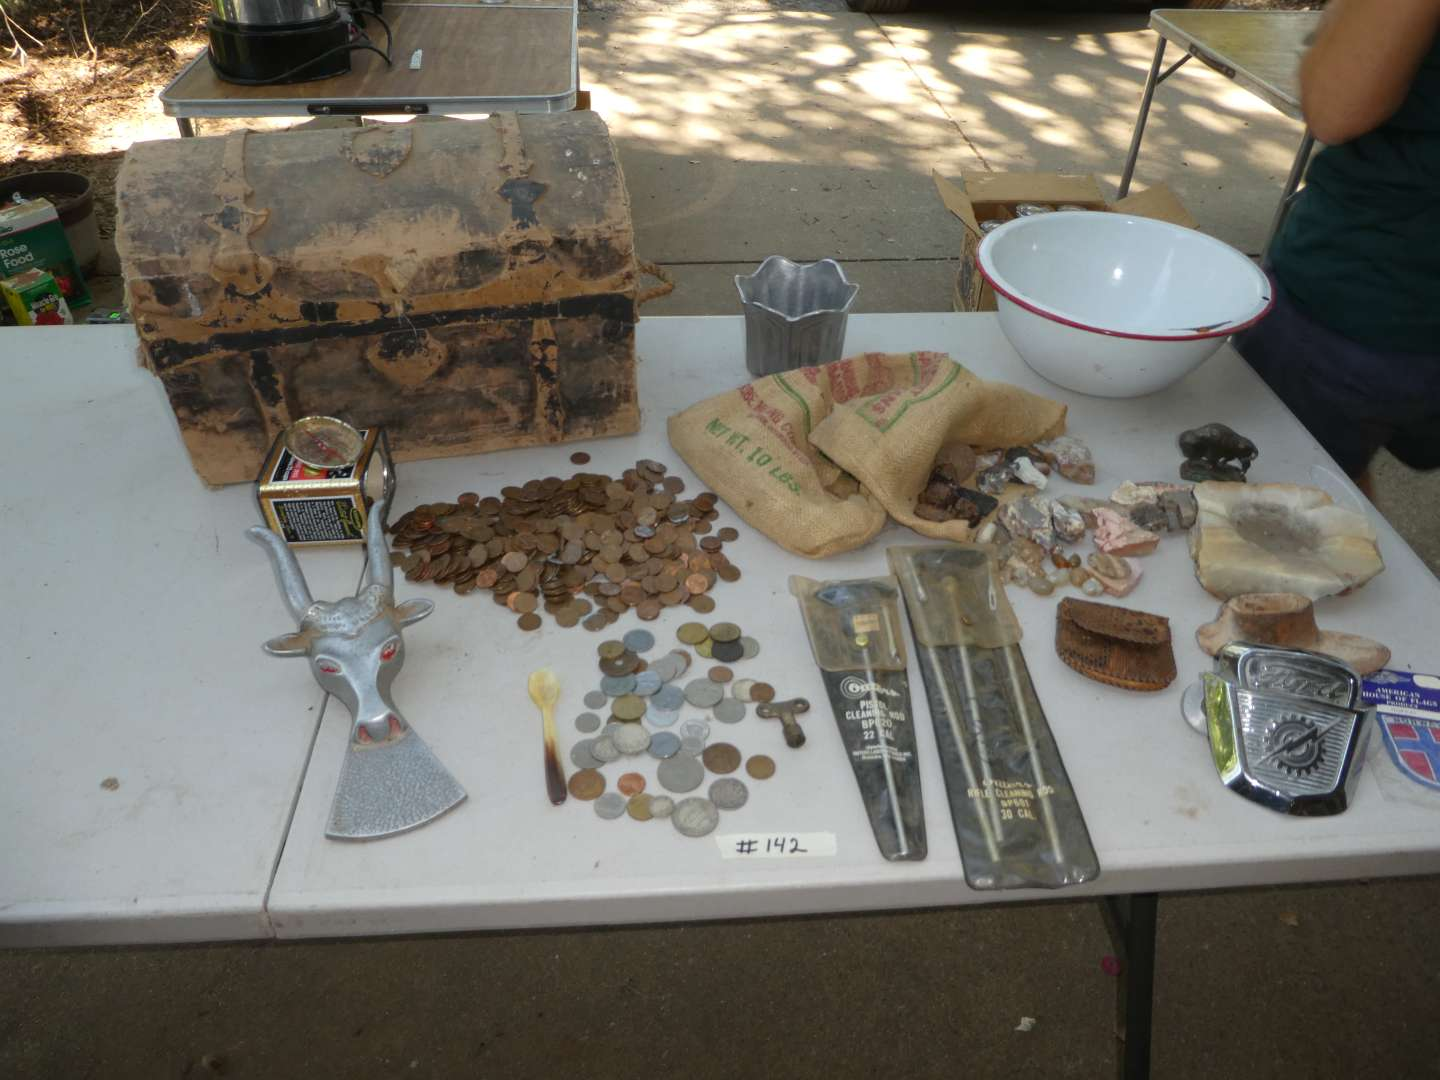 Lot # 142 - Small Old Chest, Un-Searched Pennies, Foreign Coins, Rocks & Collectibles